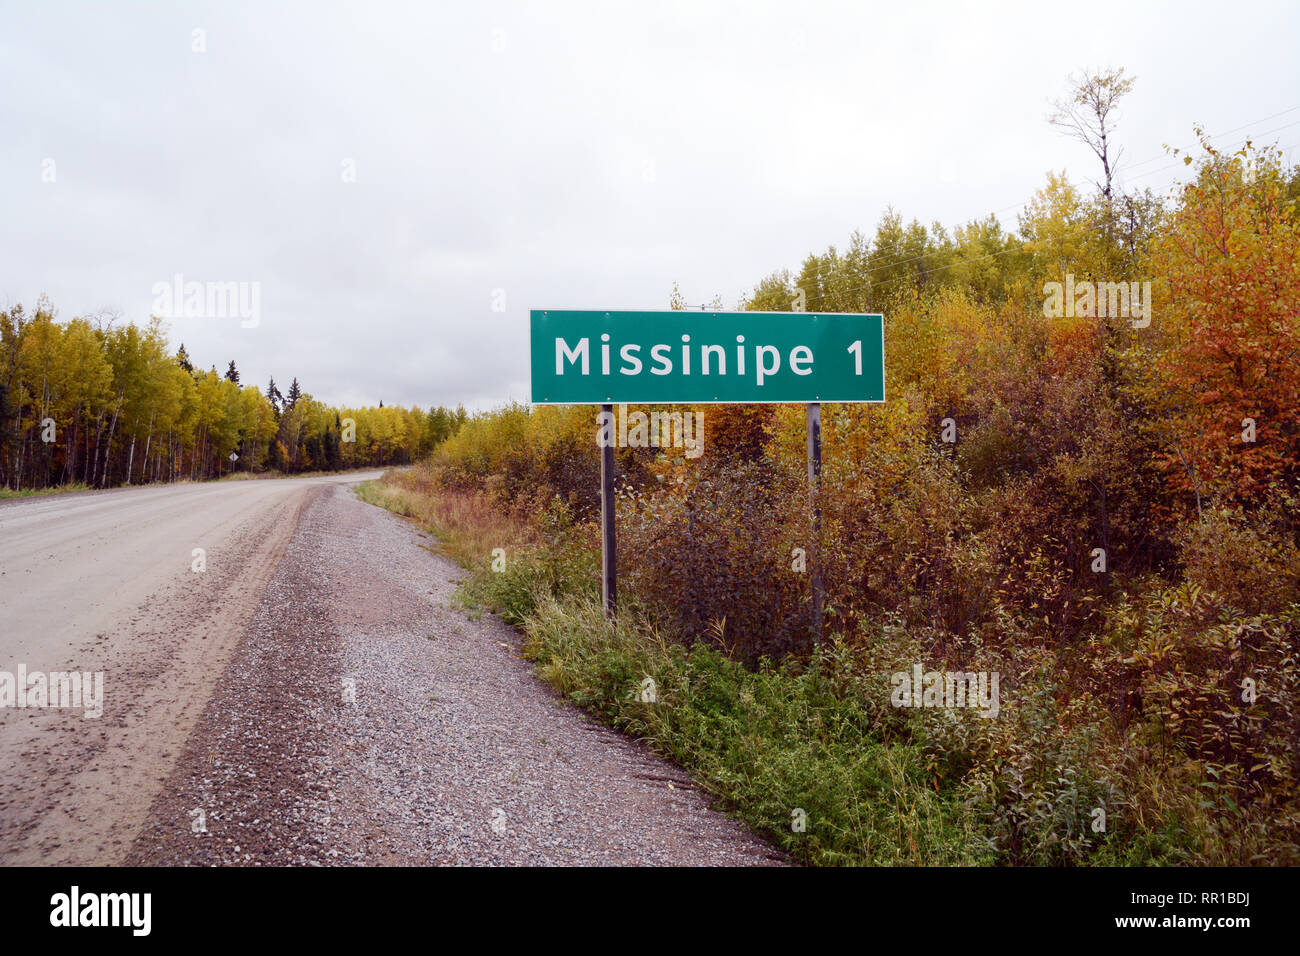 A road sign at the entrance to the town of Missinipe, a remote community in the boreal forest of Northern Saskatchewan, Canada. - Stock Image